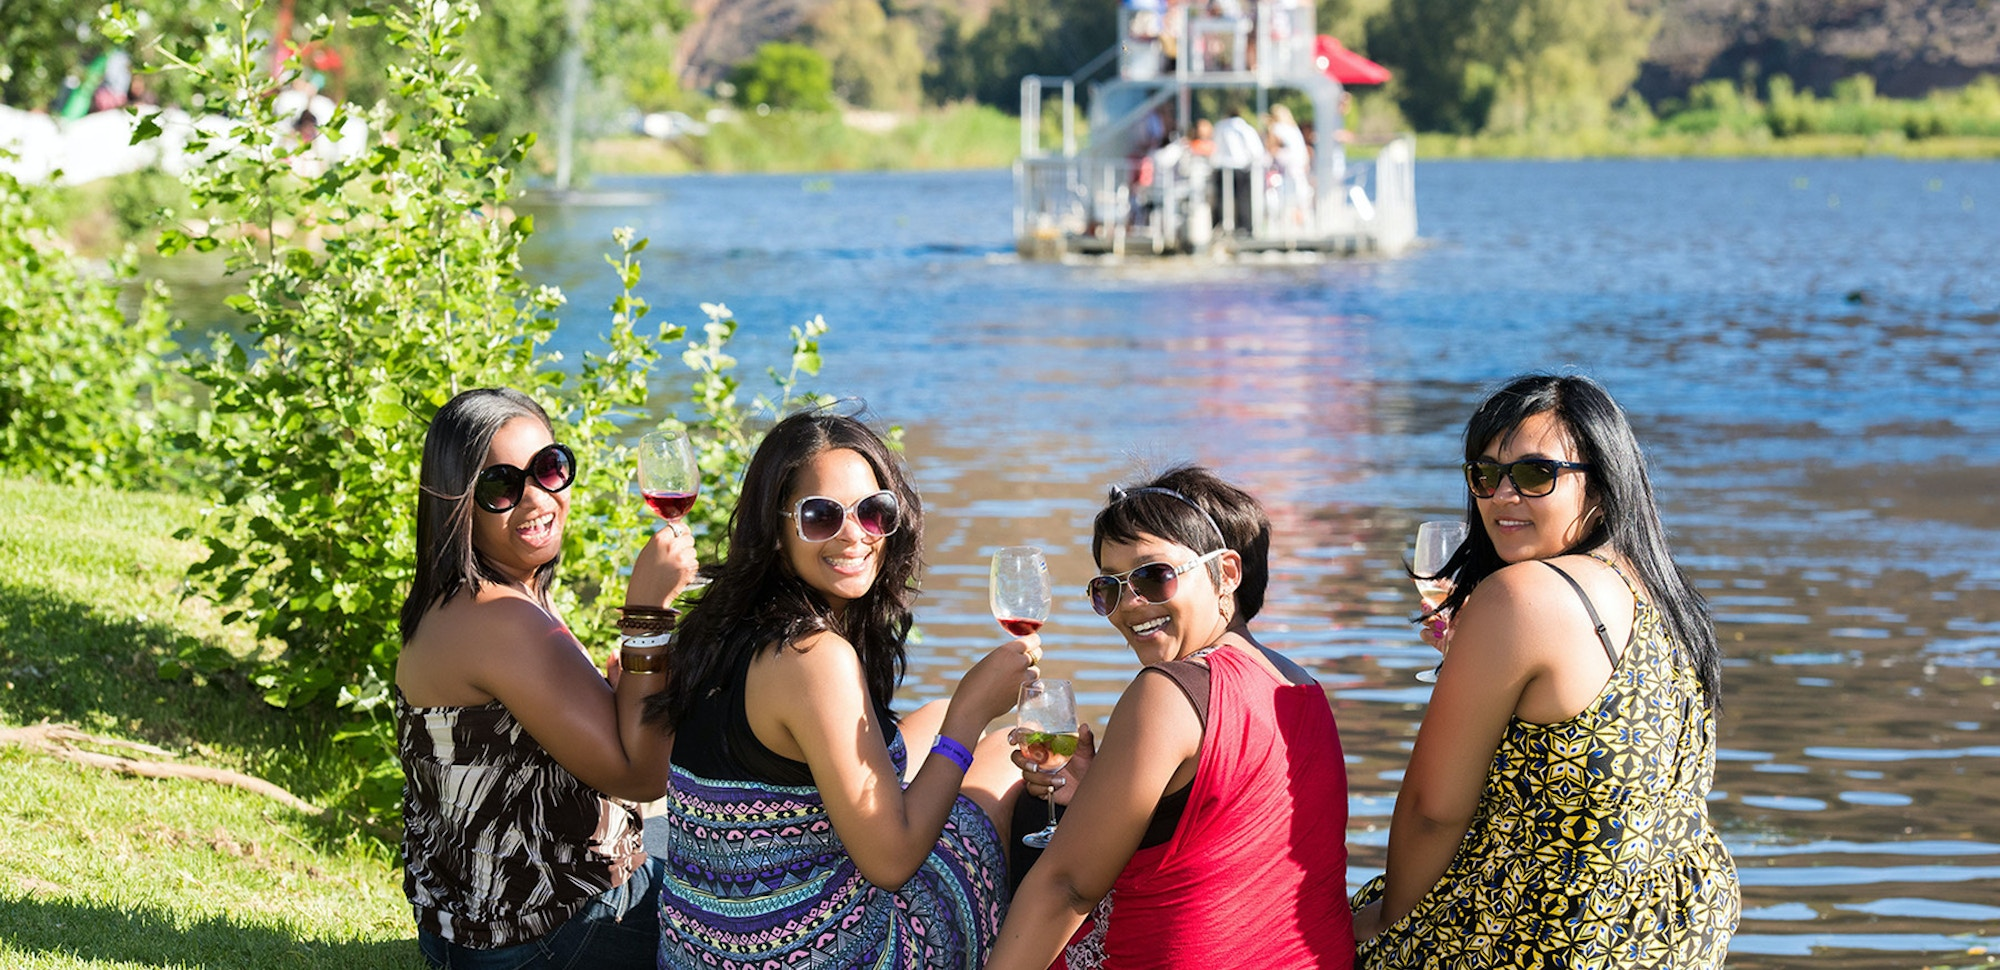 Wine on the River 993fa46af1c781ce3191bbb475b9e7a0